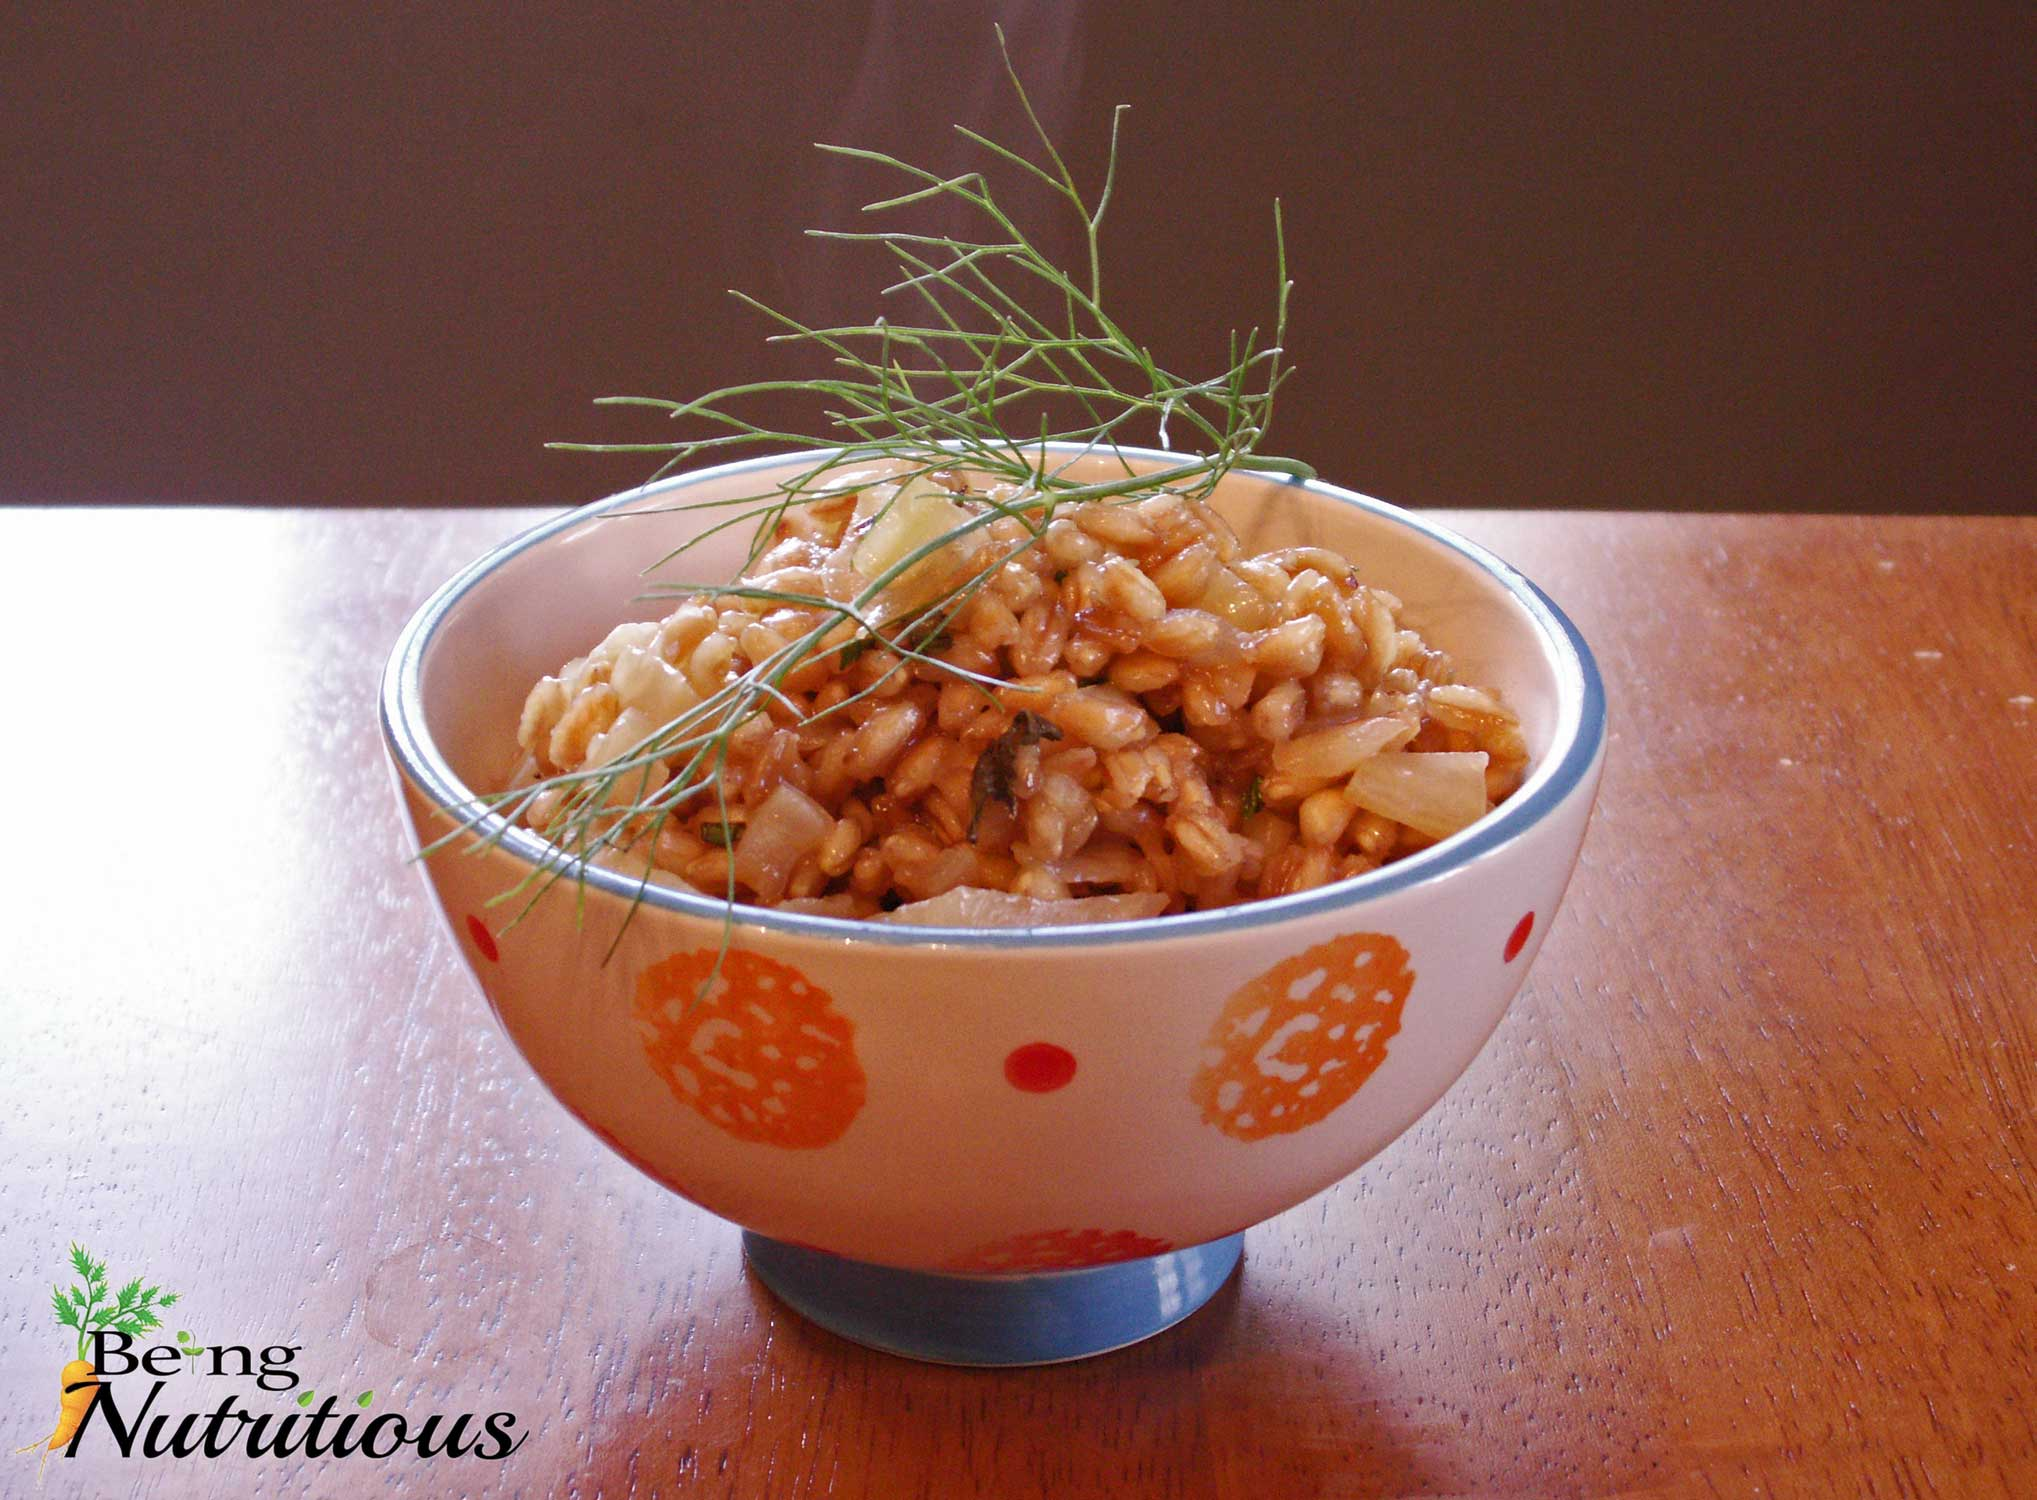 Apple Fennel Farro Pilaf garnished with fennel frond